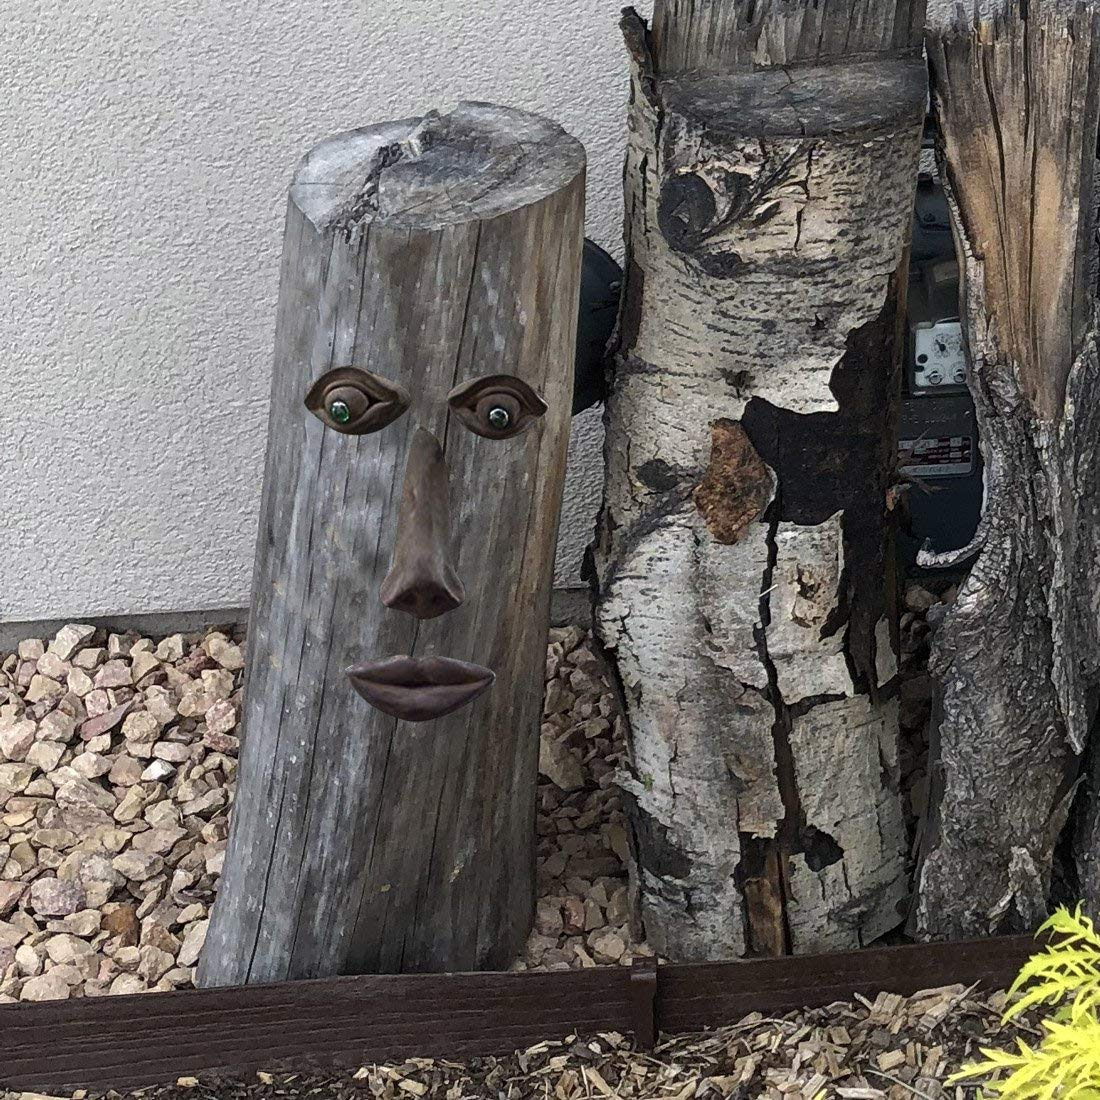 SIGMALL Garden Tree Face Sculpture Decor - Funny Outdoor Yard Art Resin Tree Tank Face Statue Decoration (Small Mouth Tree Face) by SIGMALL